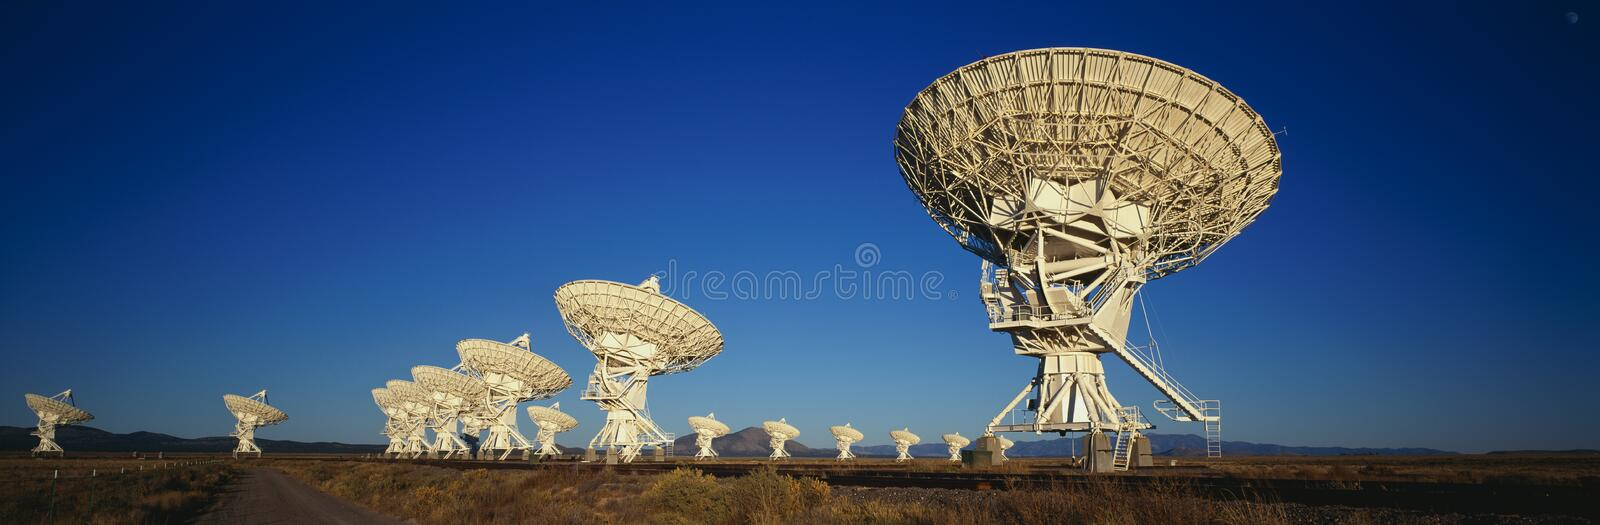 Very Large Array in Socorro, NM stock image